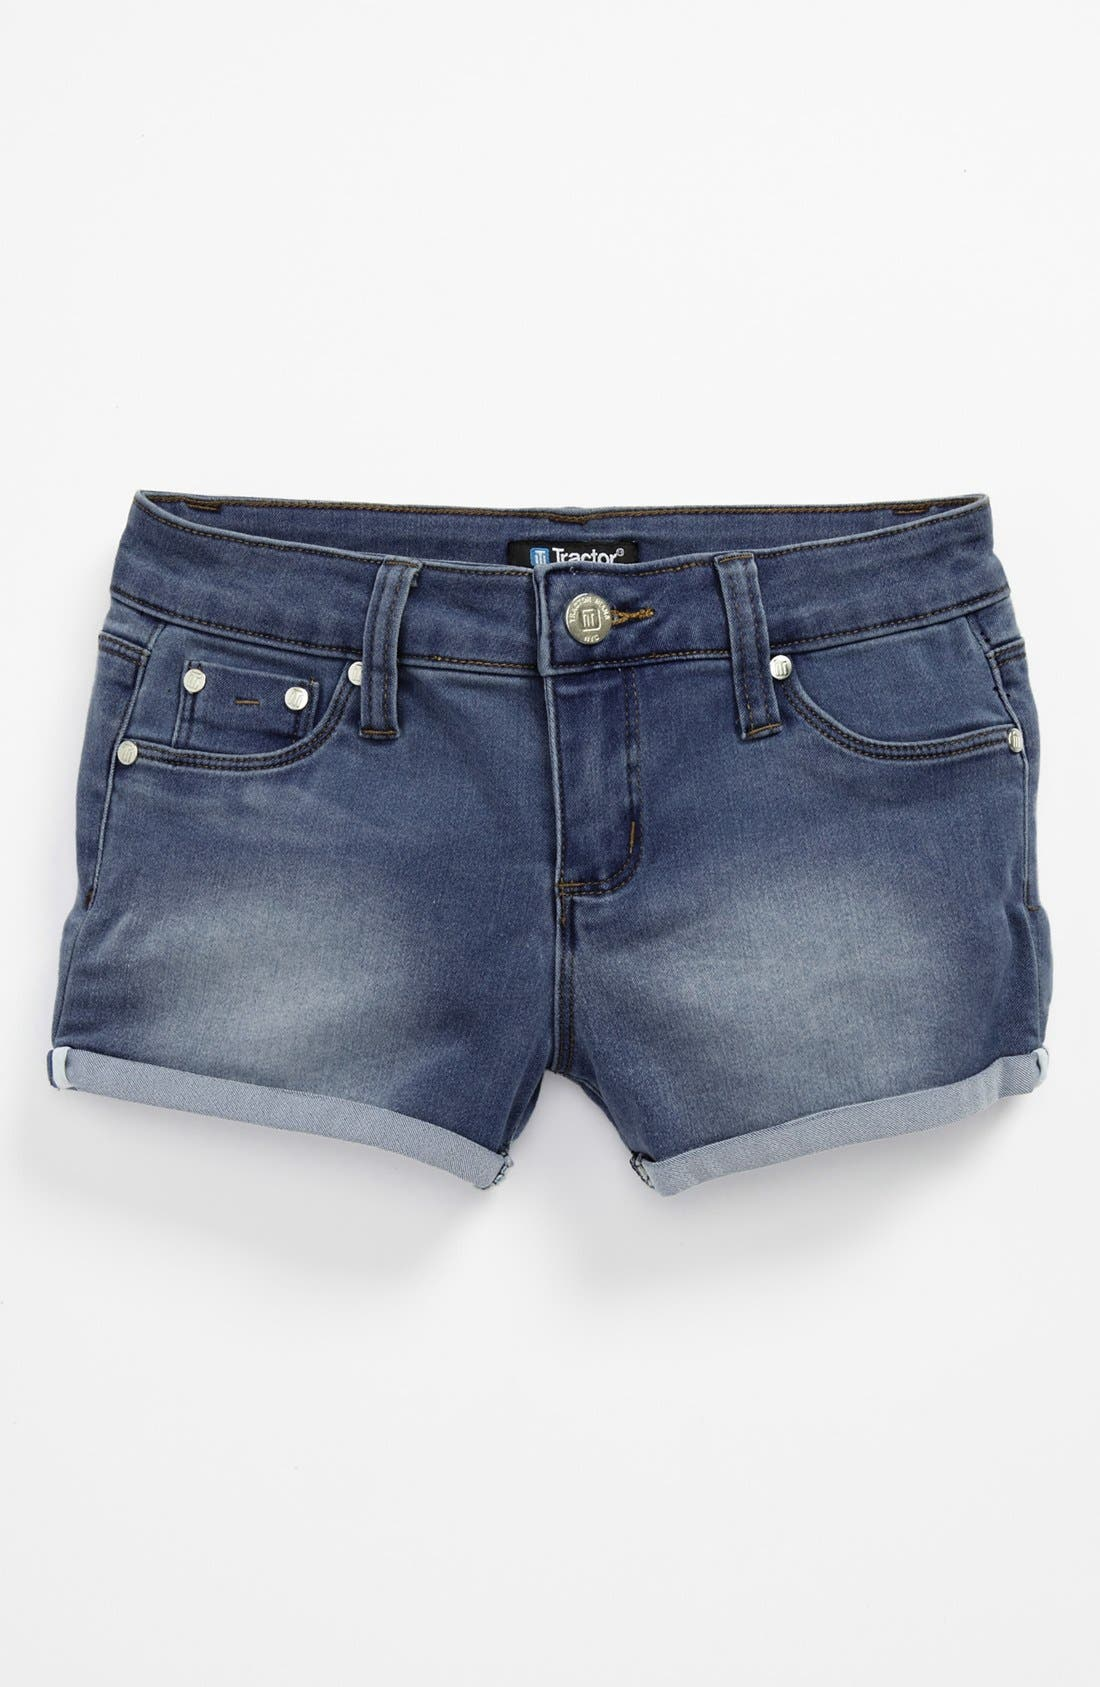 Alternate Image 1 Selected - Tractr 'Roll Up' Shorts (Big Girls)